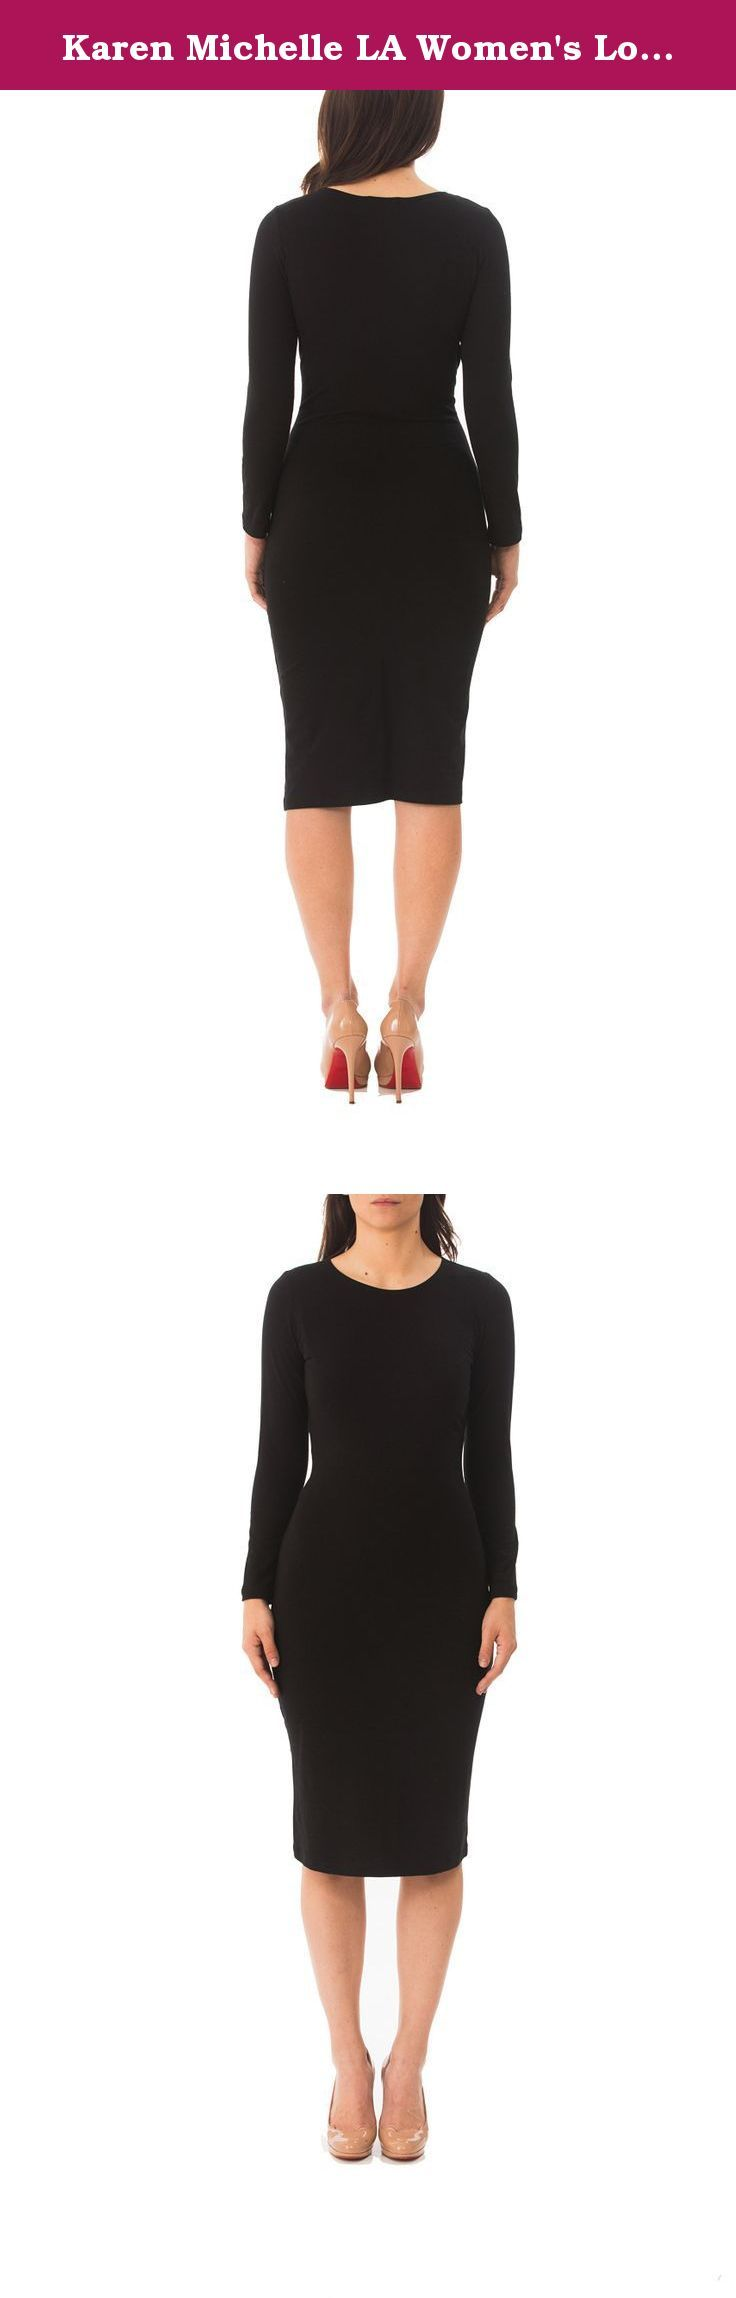 Karen Michelle LA Women's Long Sleeve Layering/Sheath Dress 1X Black. This one piece fitted silhouette layering/sheath dress can be layered with a jacket or blazer and worn for day or evening events. Go from work to play in this classic staple dress. Comfortable and easy to wear! Features a body hugging, fitted silhouette.